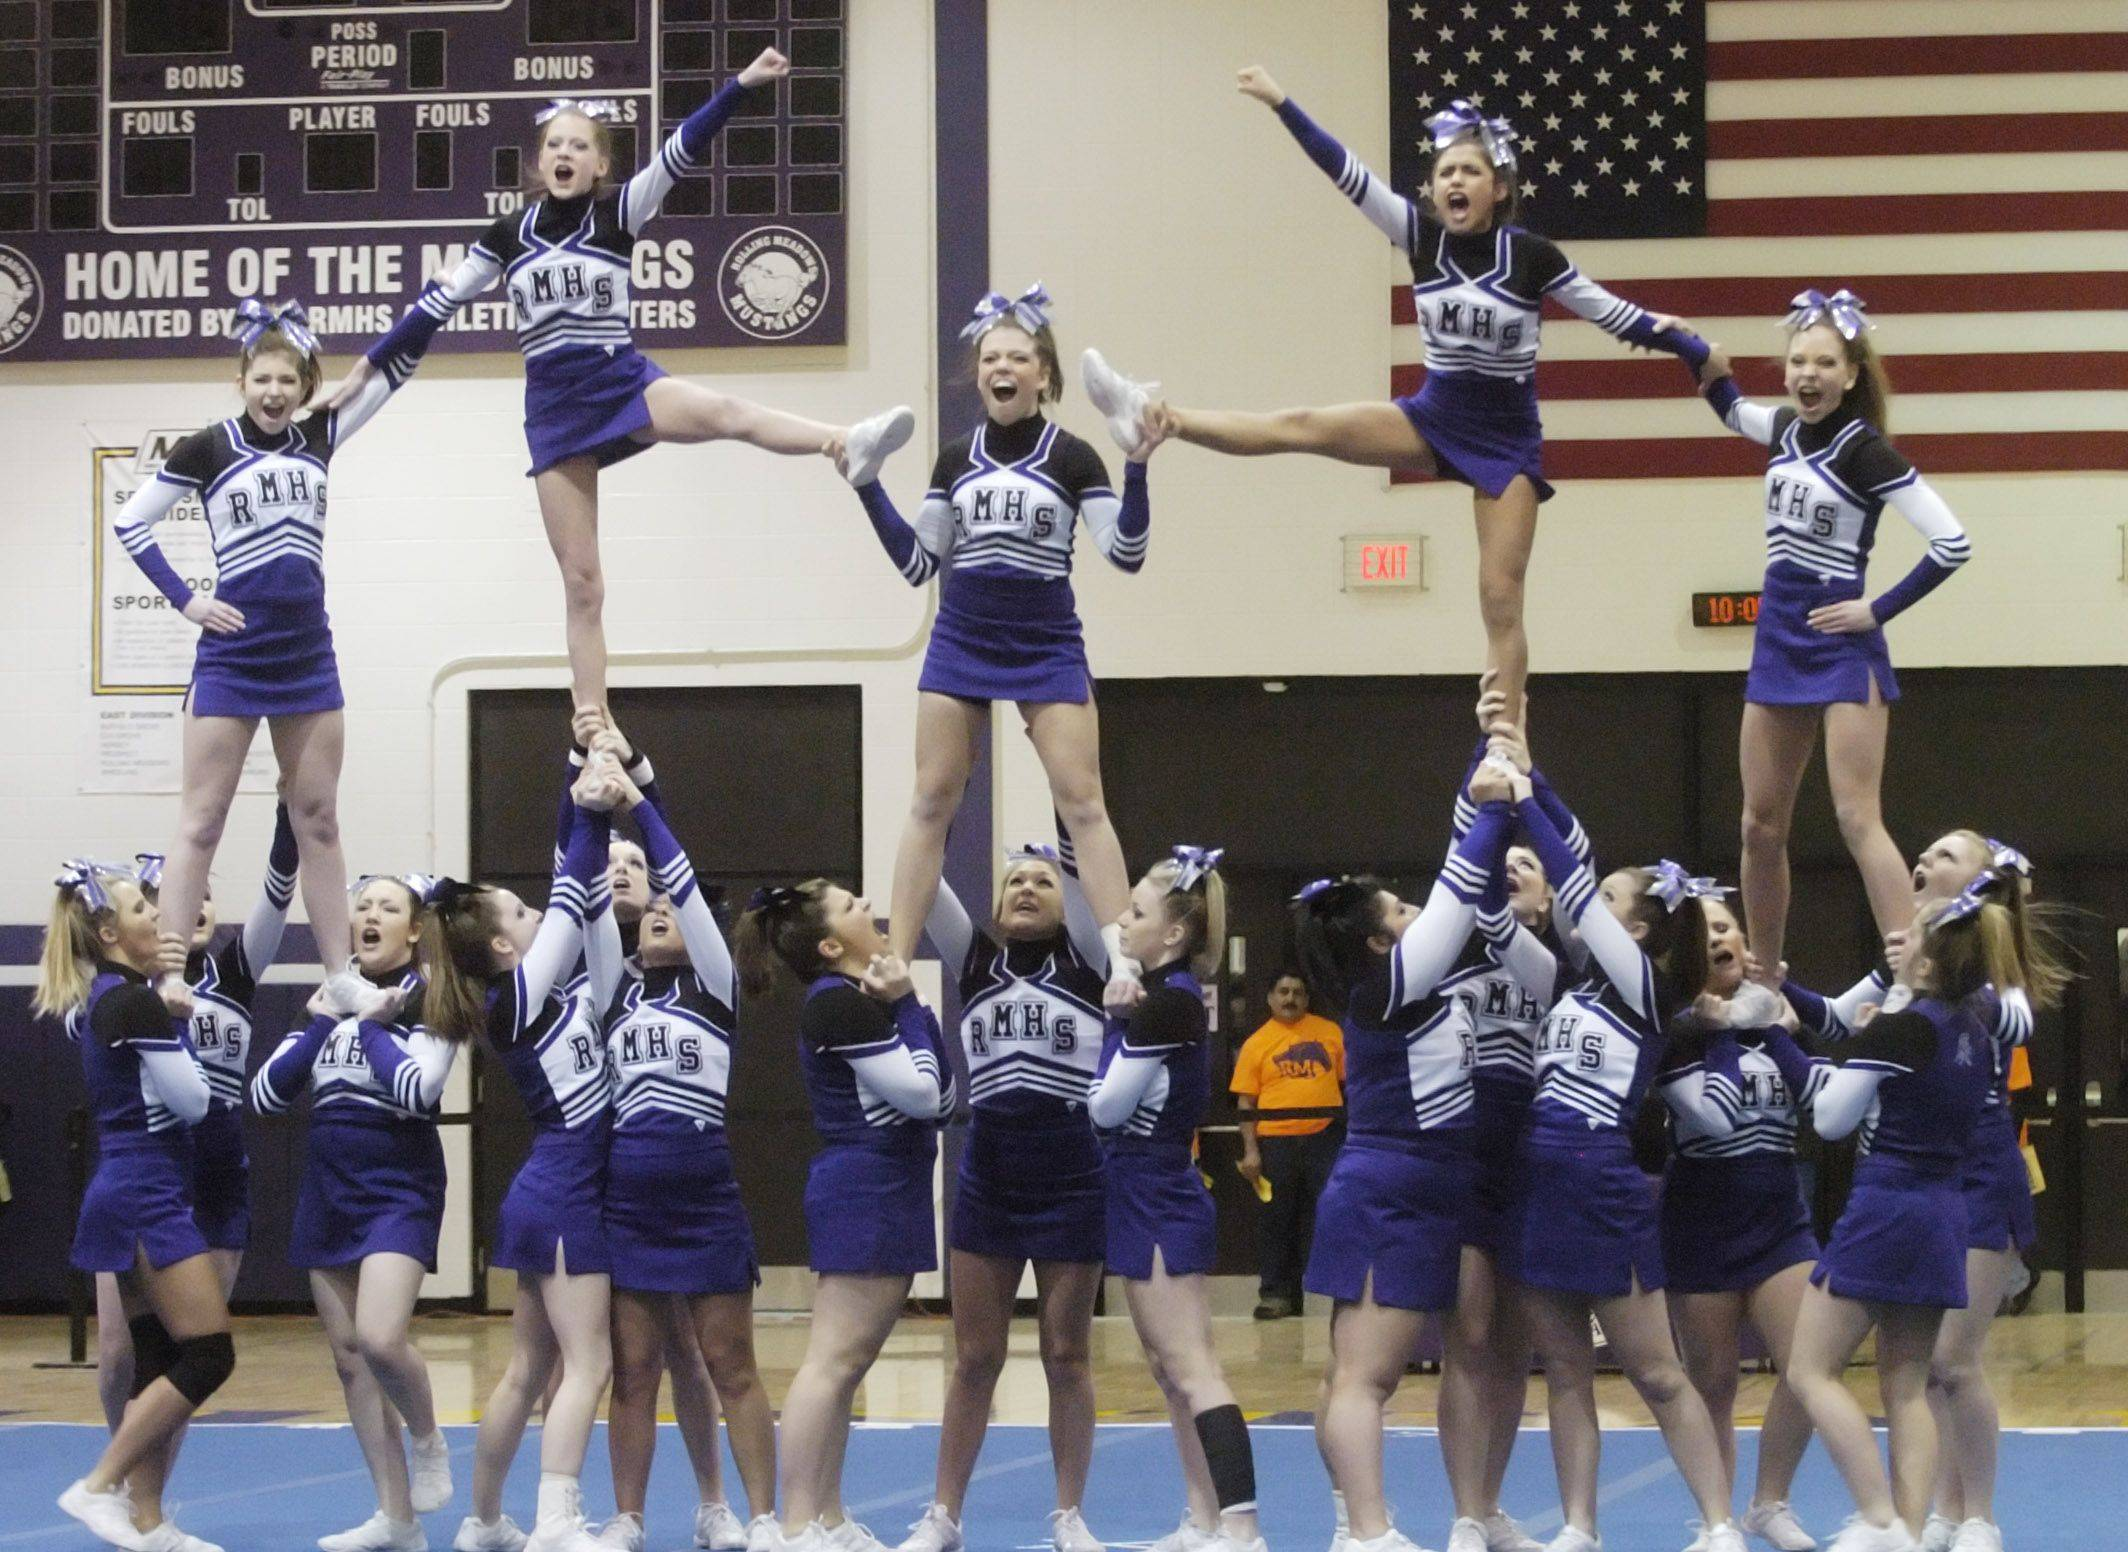 Rolling Meadows competes during Saturday's cheerleading sectional hosted by Rolling Meadows High School.